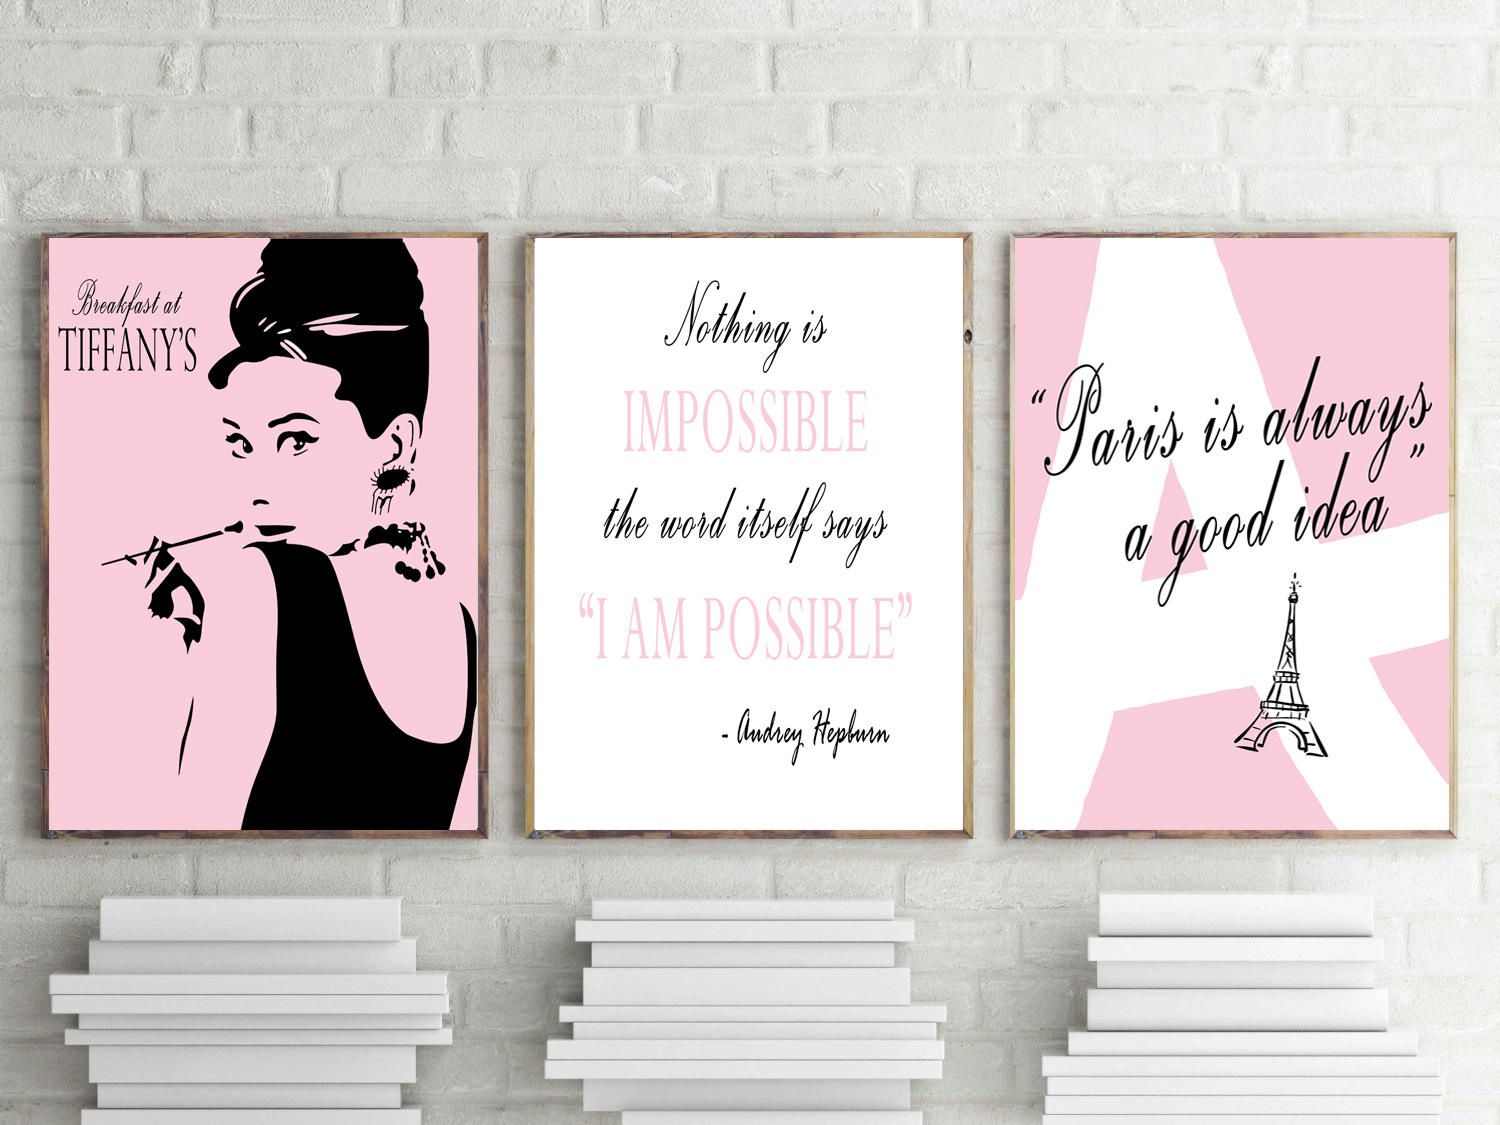 Audrey Hepburn Poster Holly Golightly Breakfast At Tiffany S Wall Art Celebrity Portrait Black And White Art Print Instant Download In 2020 Audrey Hepburn Poster Breakfast At Tiffany S Poster Breakfast At Tiffanys